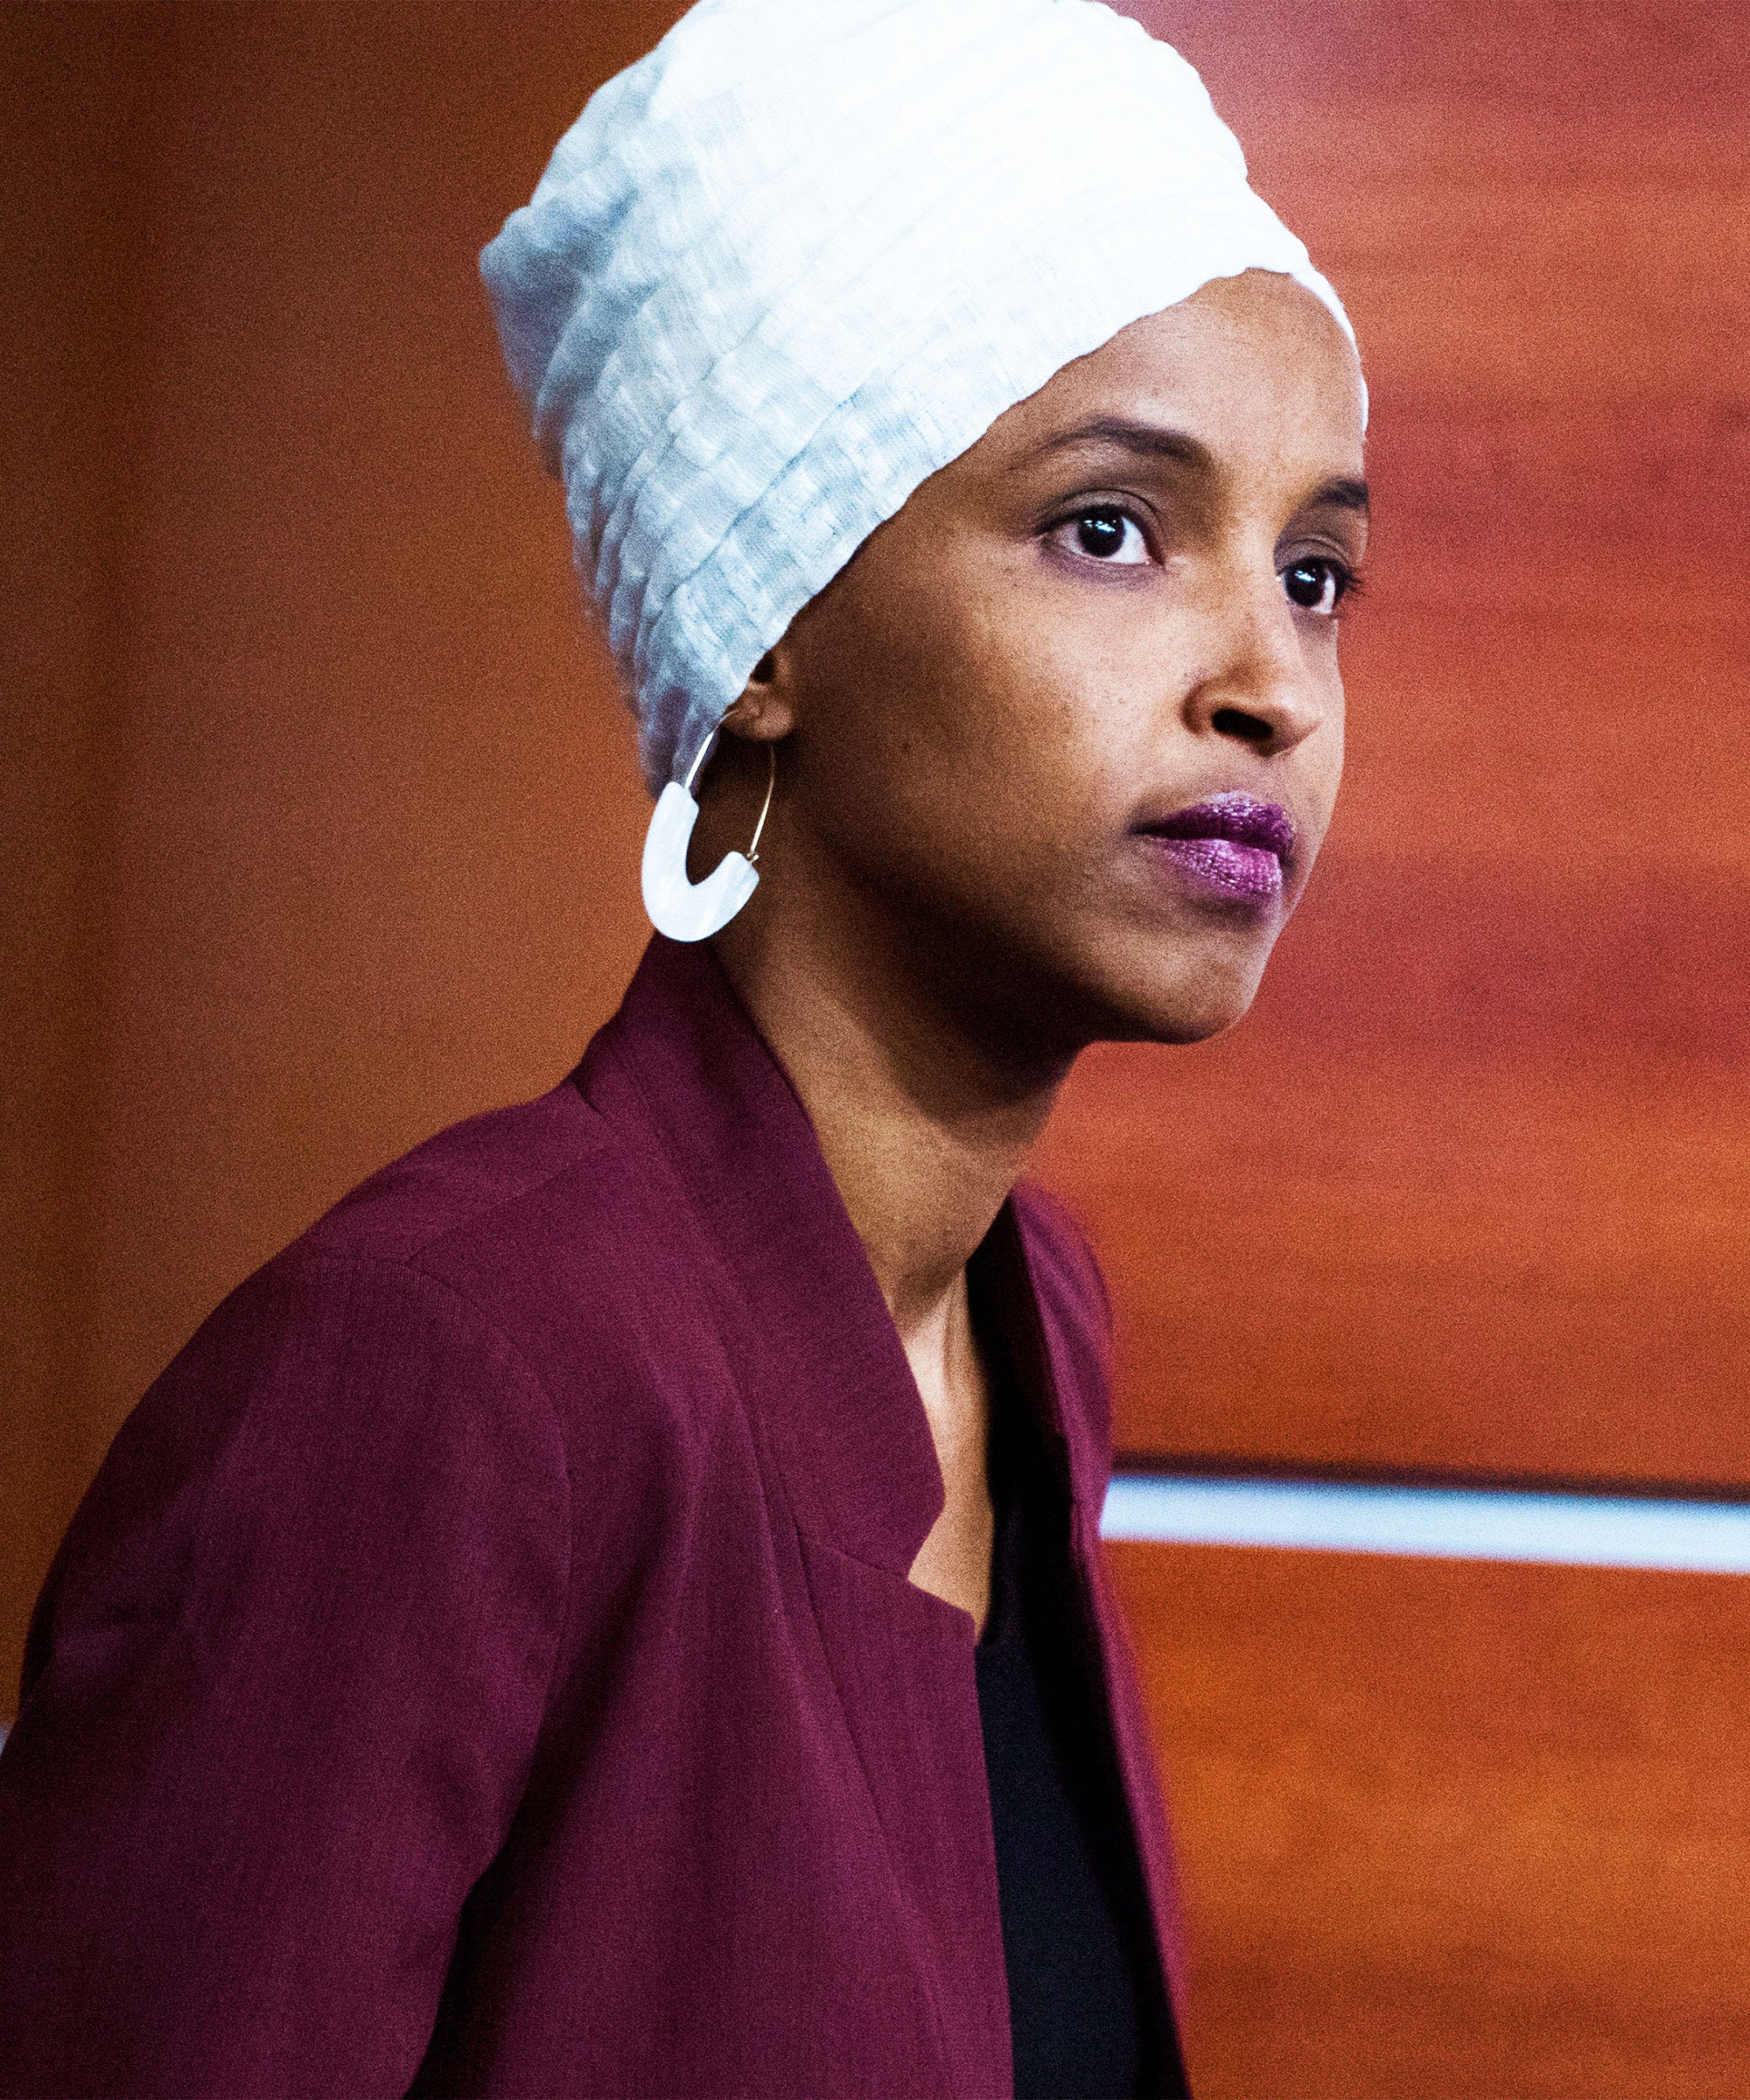 Democrats Rally Behind Ilhan Omar After Trump's Attacks